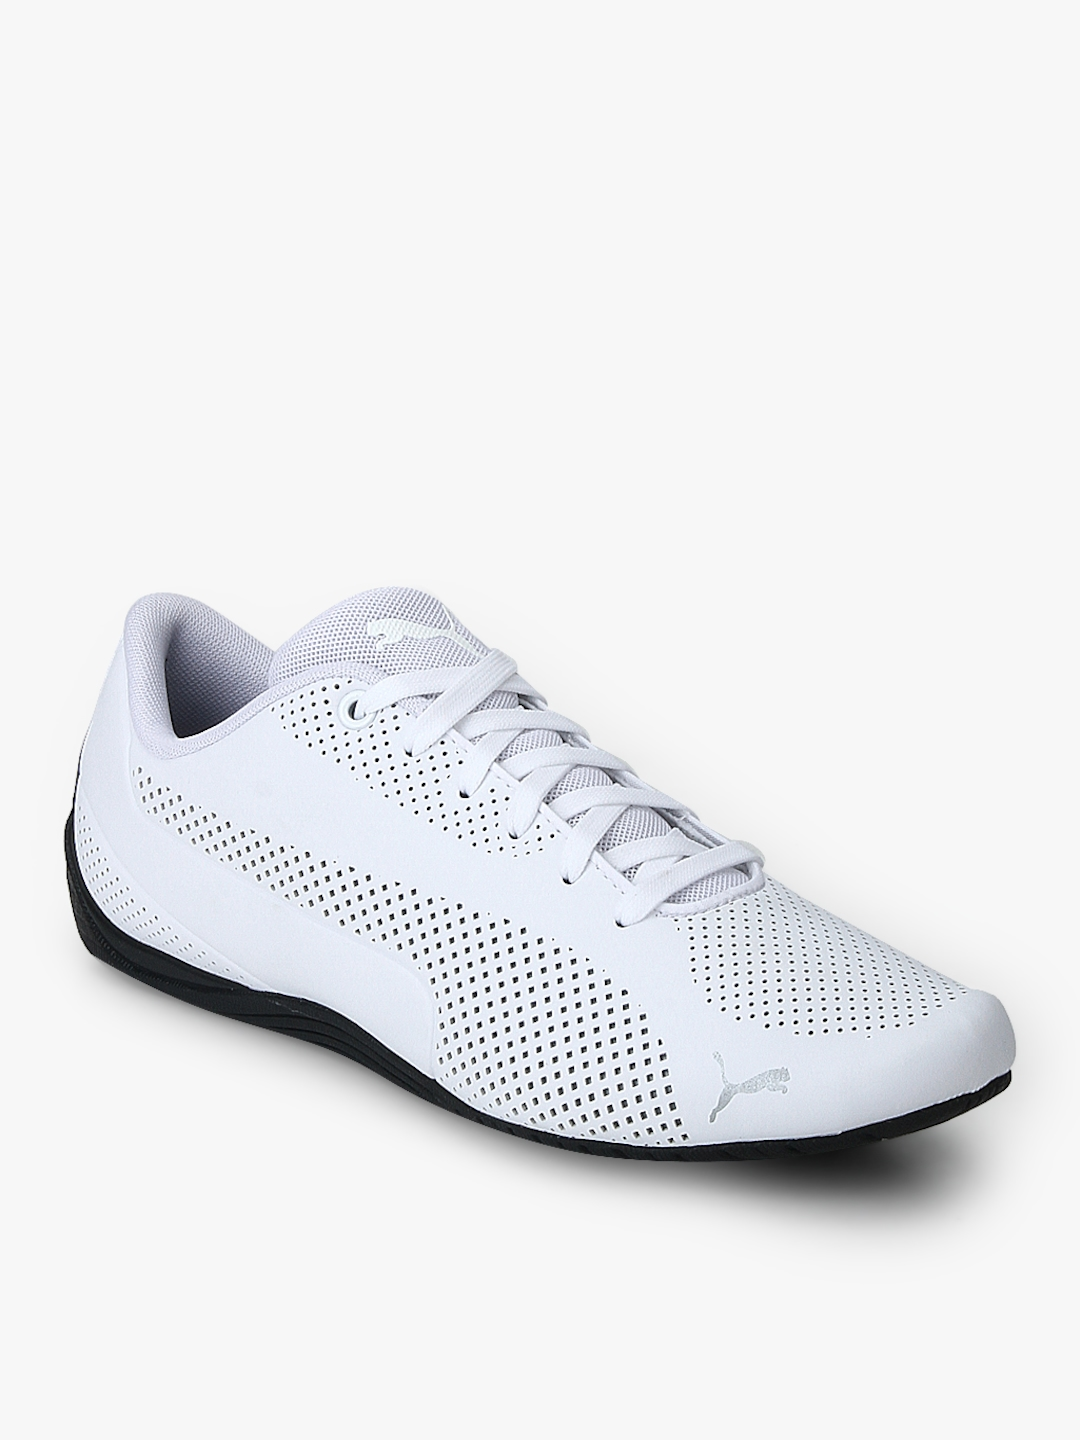 Buy Drift Cat Ultra Reflective White Sneakers - Casual Shoes for ... 5dac867ac